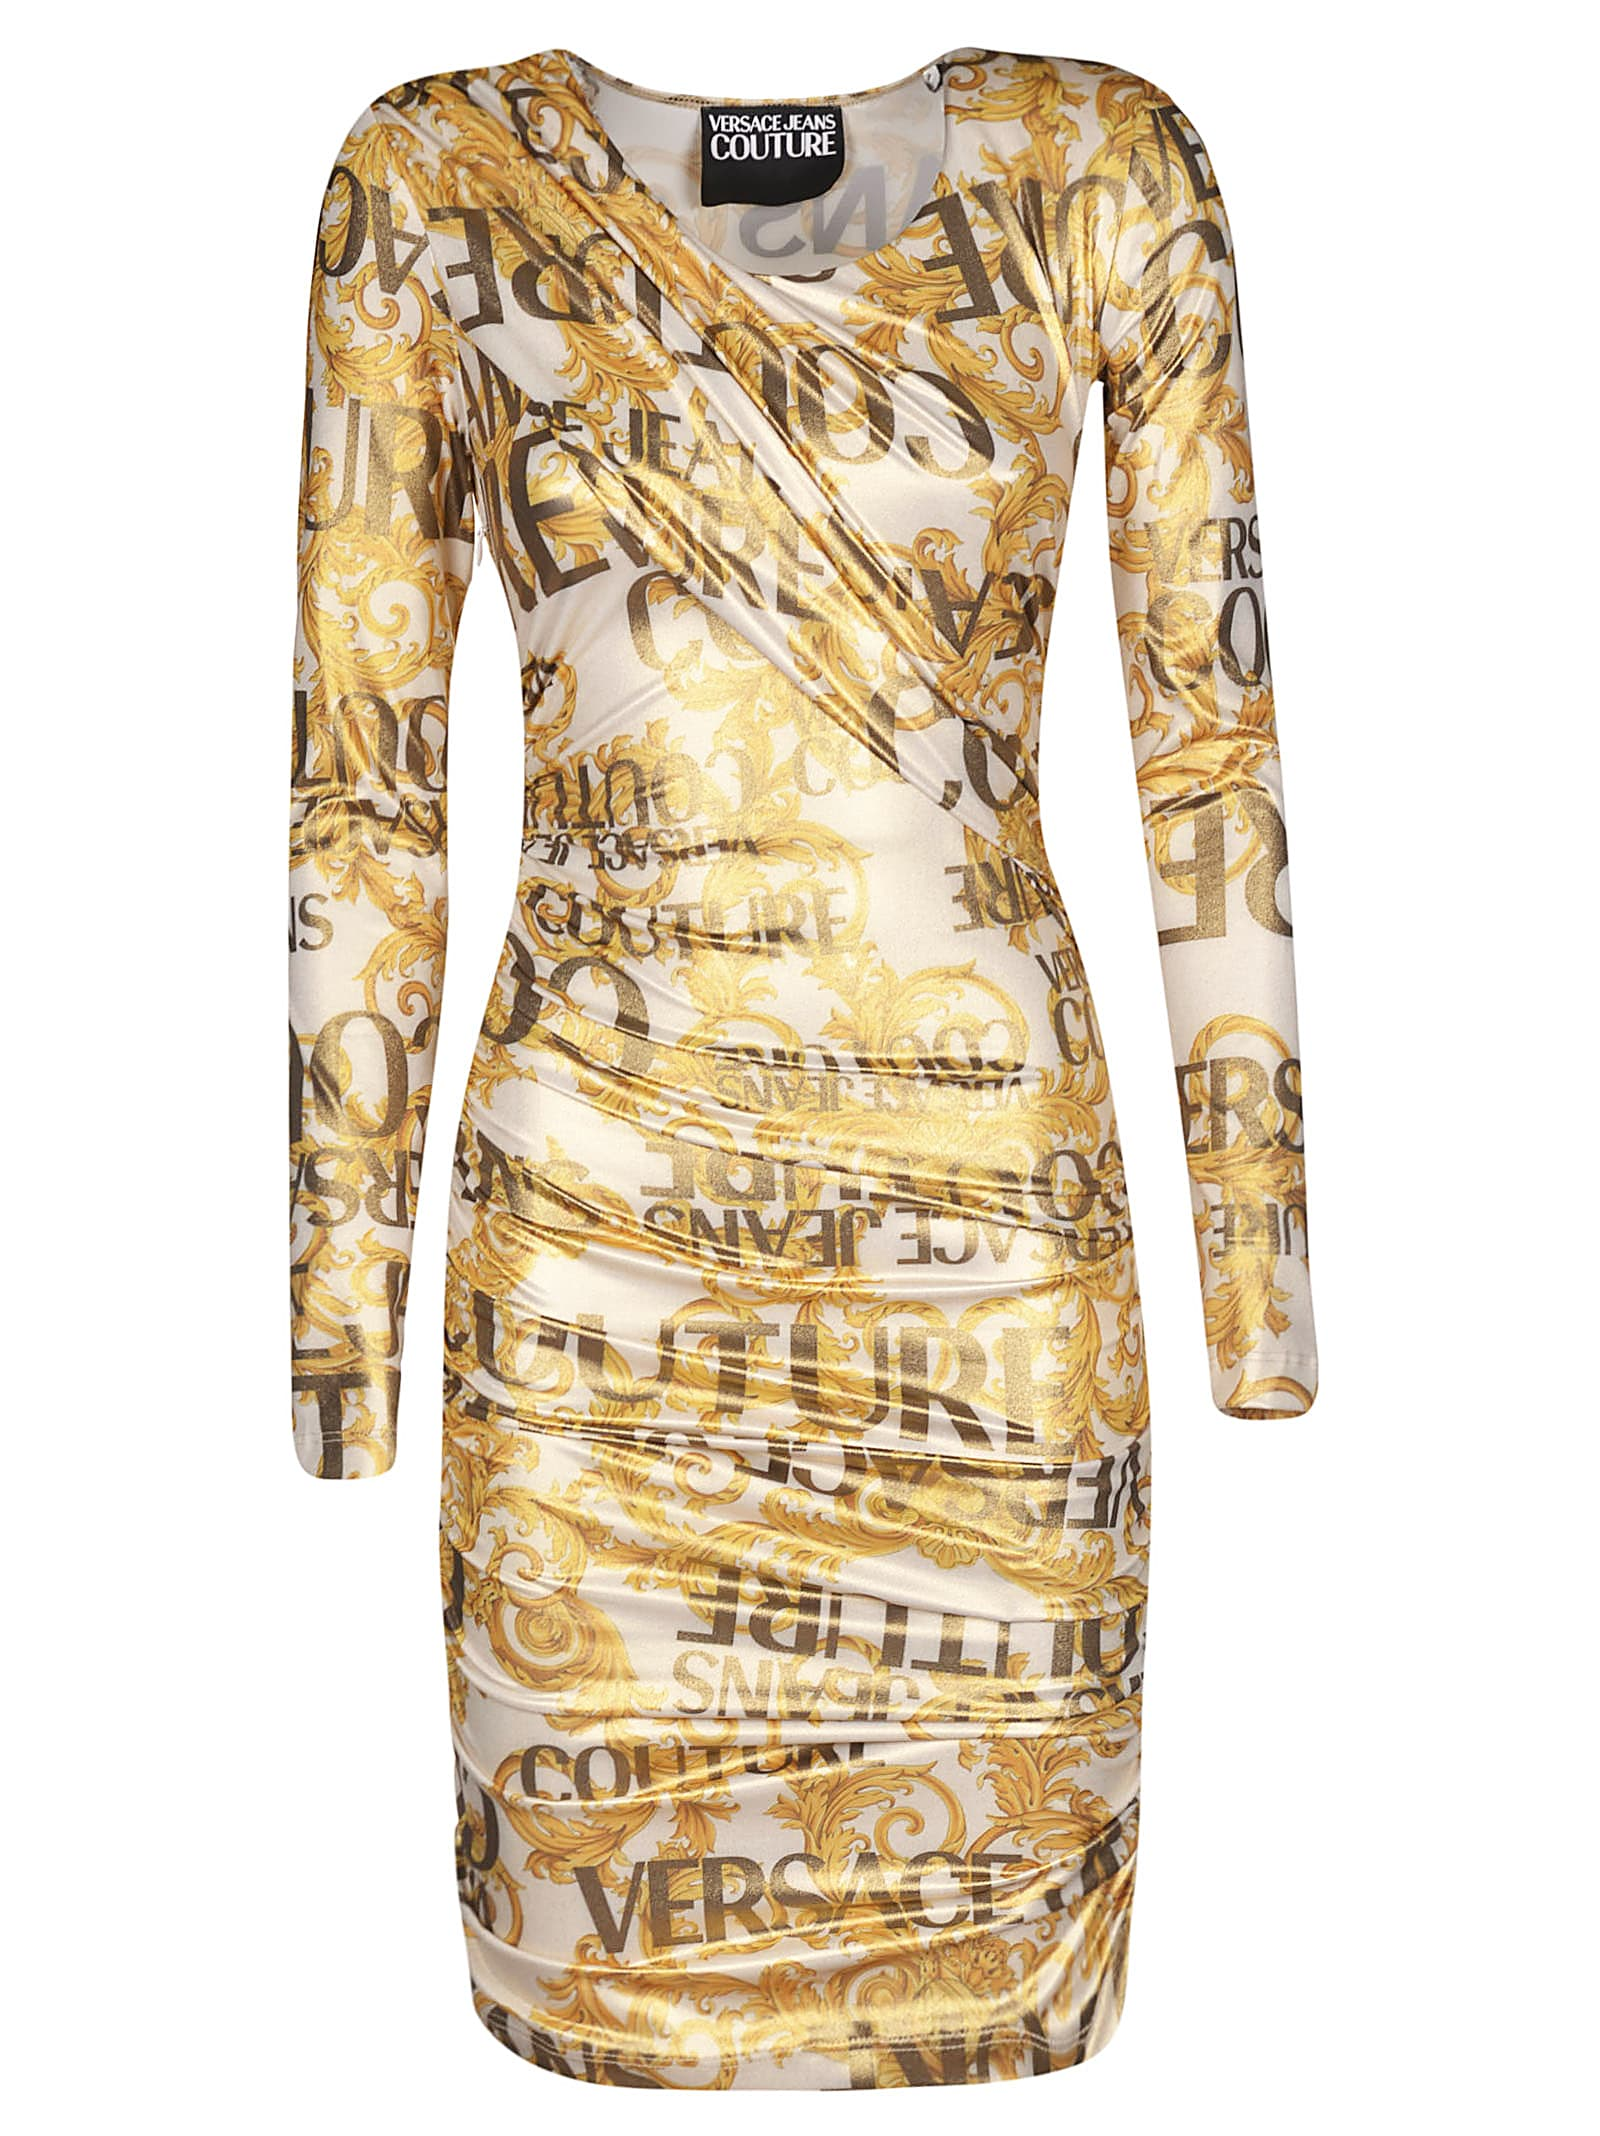 Versace Jeans Couture Sprouse Baroque Dress